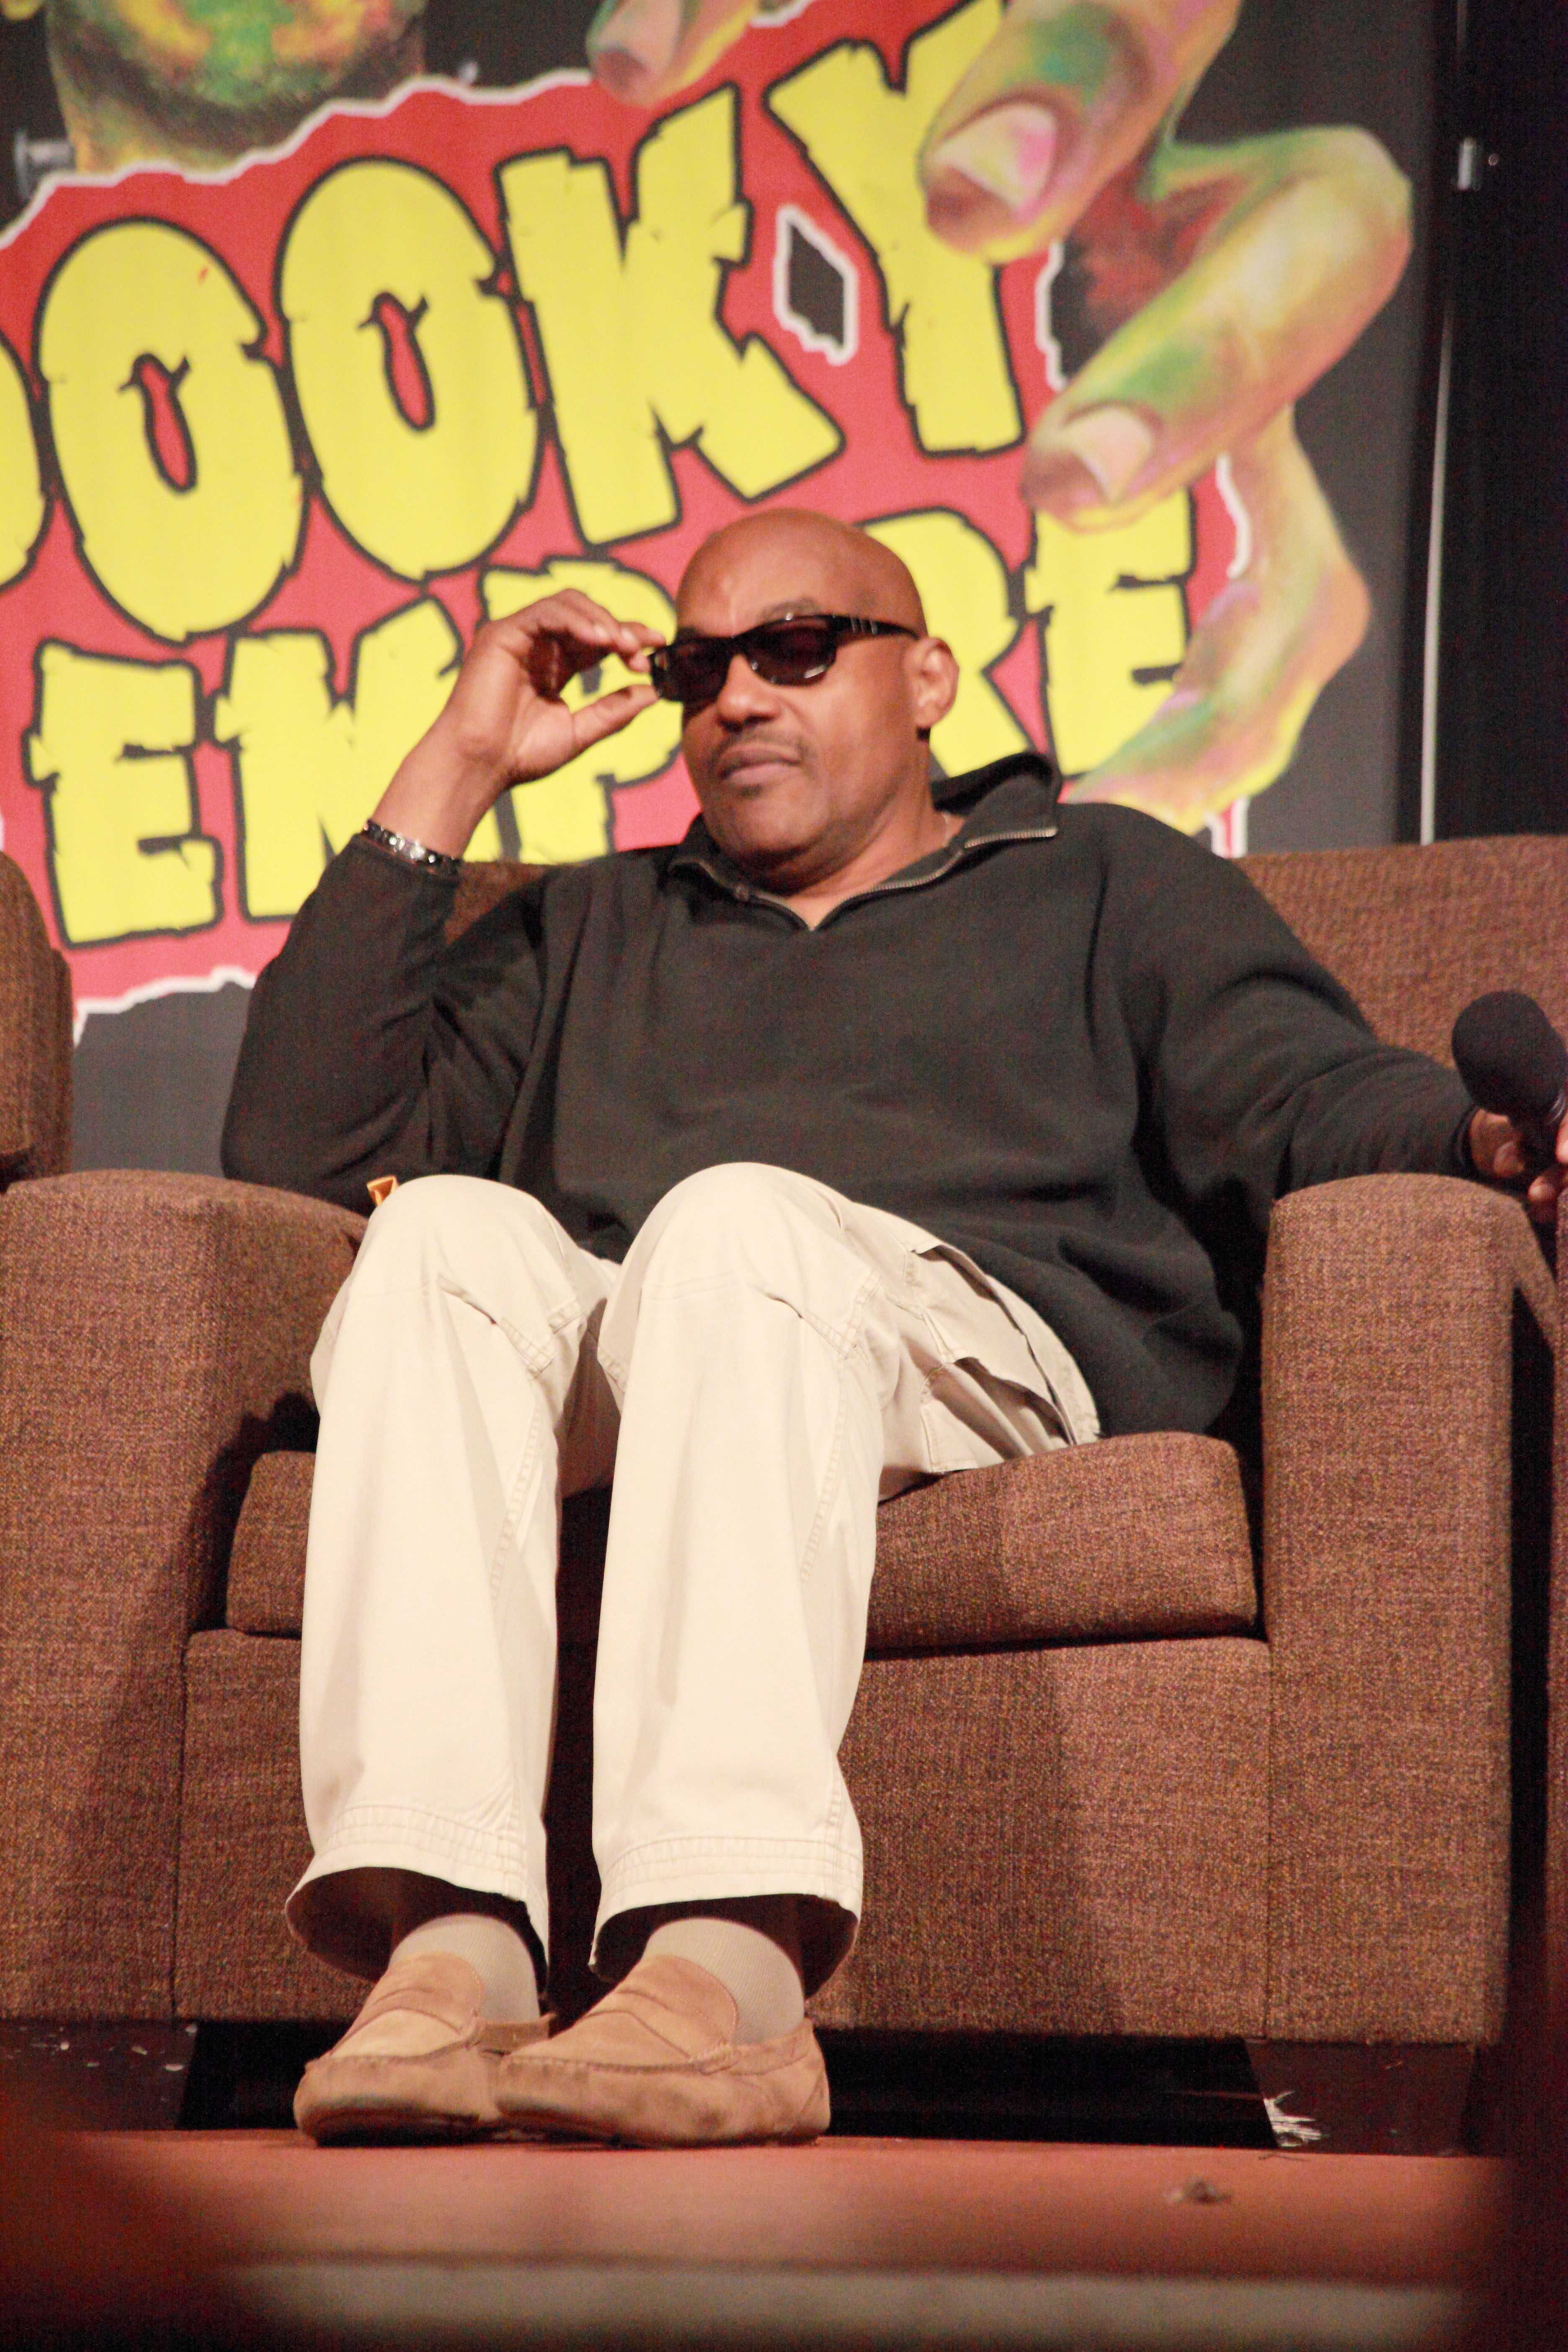 ken foree appearancesken foree 2016, ken foree, ken foree height, ken foree imdb, ken foree net worth, ken foree dawn of the dead, ken foree kenan and kel, ken foree halloween, ken foree autograph, ken foree x files, ken foree interview, ken foree wife, ken foree facebook, ken foree appearances, ken foree twitter, ken foree filmography, ken foree official website, ken foree wikipedia, ken foree height and weight, ken foree age